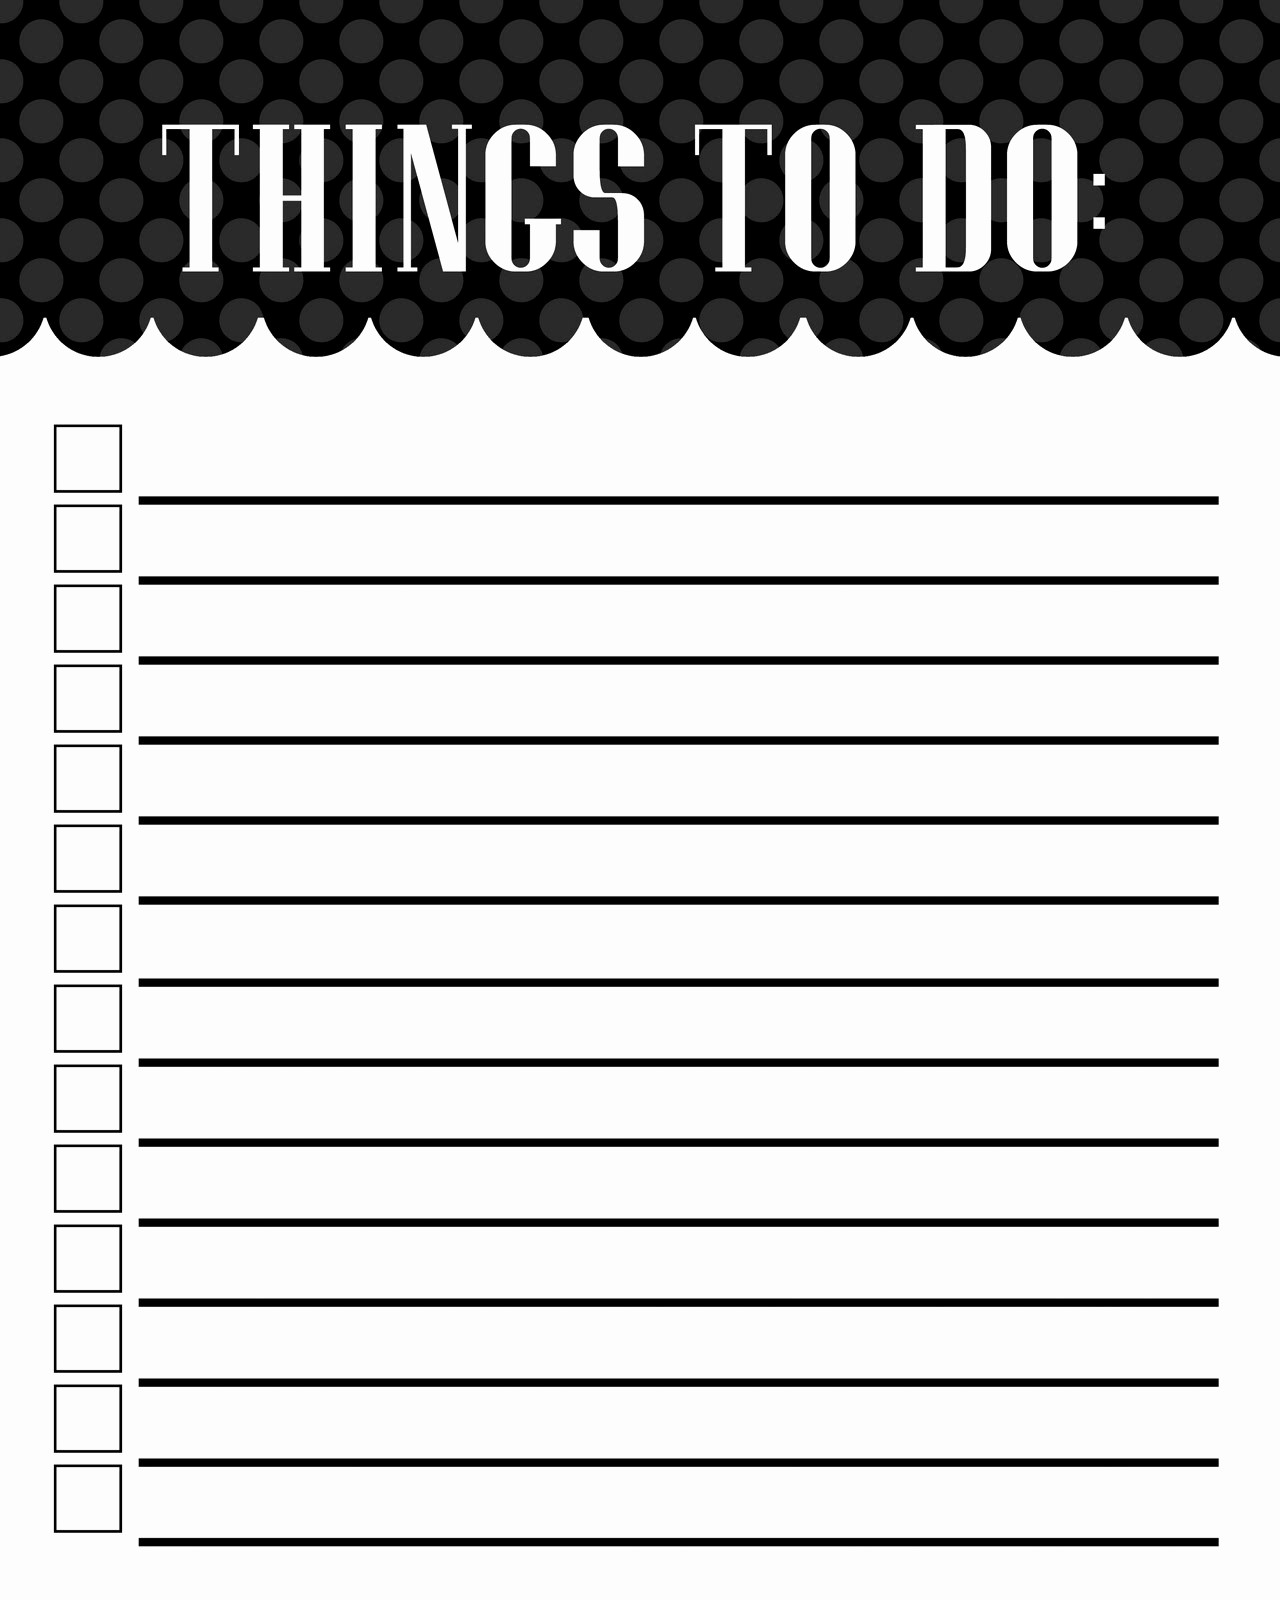 Word for Things to Do Inspirational Free Blank Printable to Do List Templates Word Excel Pdf